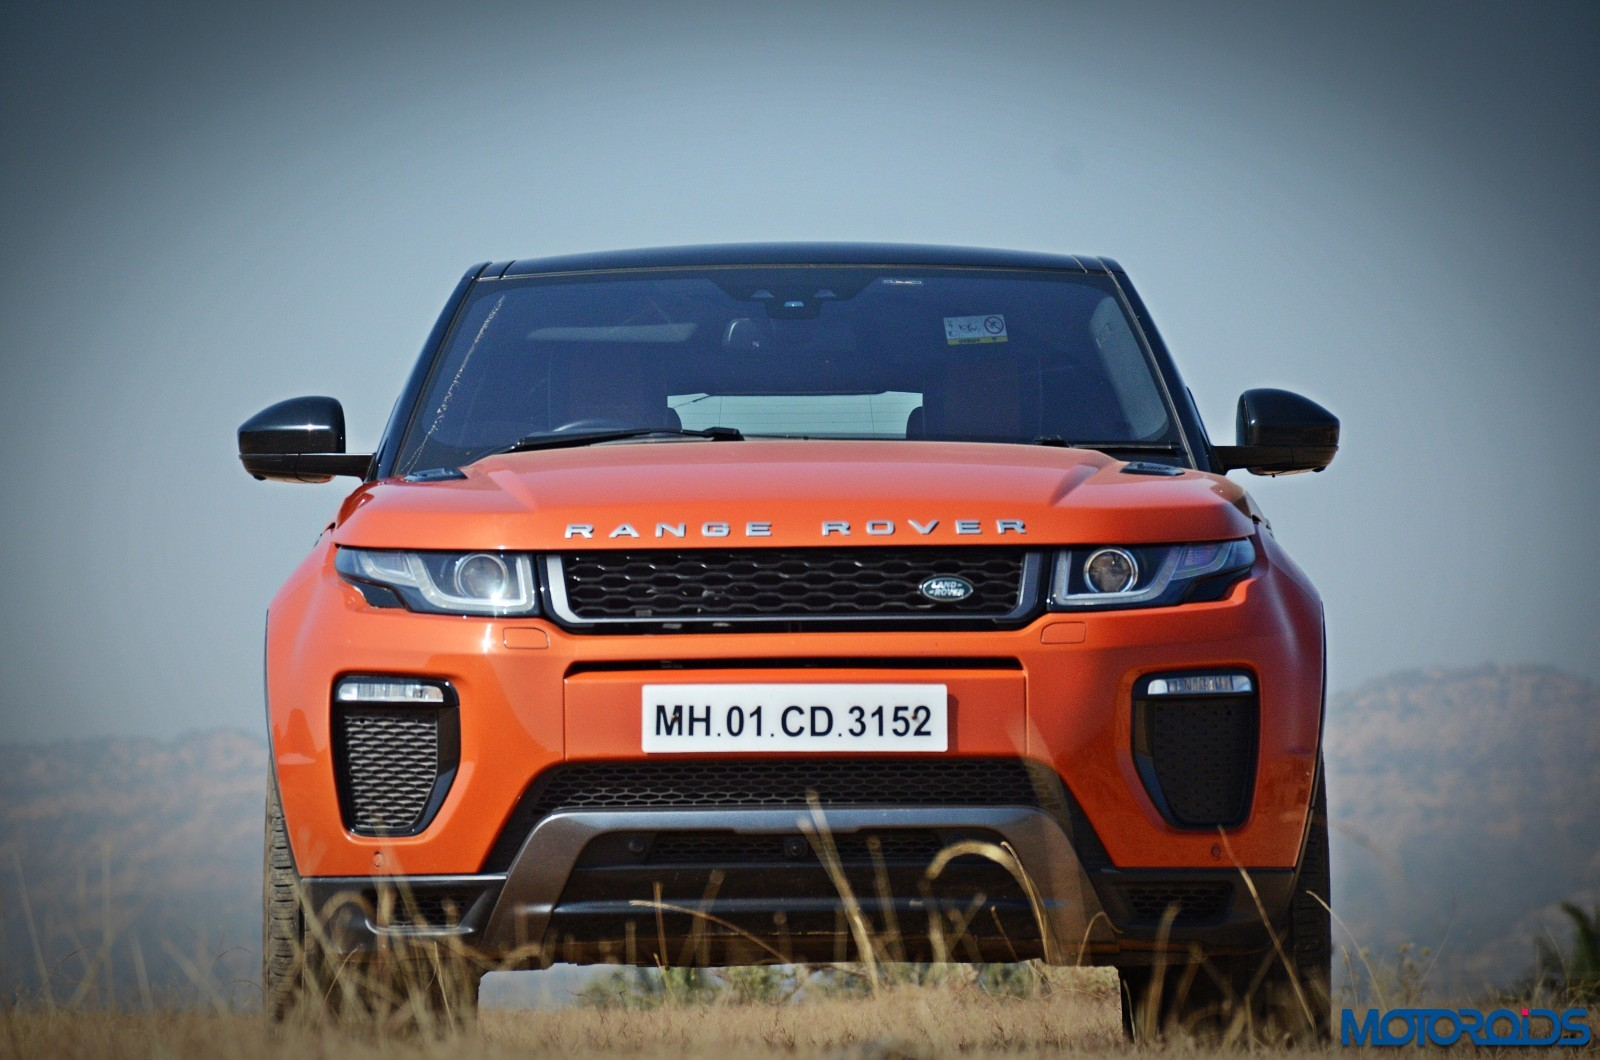 post brexit range rover suvs in india are selling for massive discounts motoroids. Black Bedroom Furniture Sets. Home Design Ideas